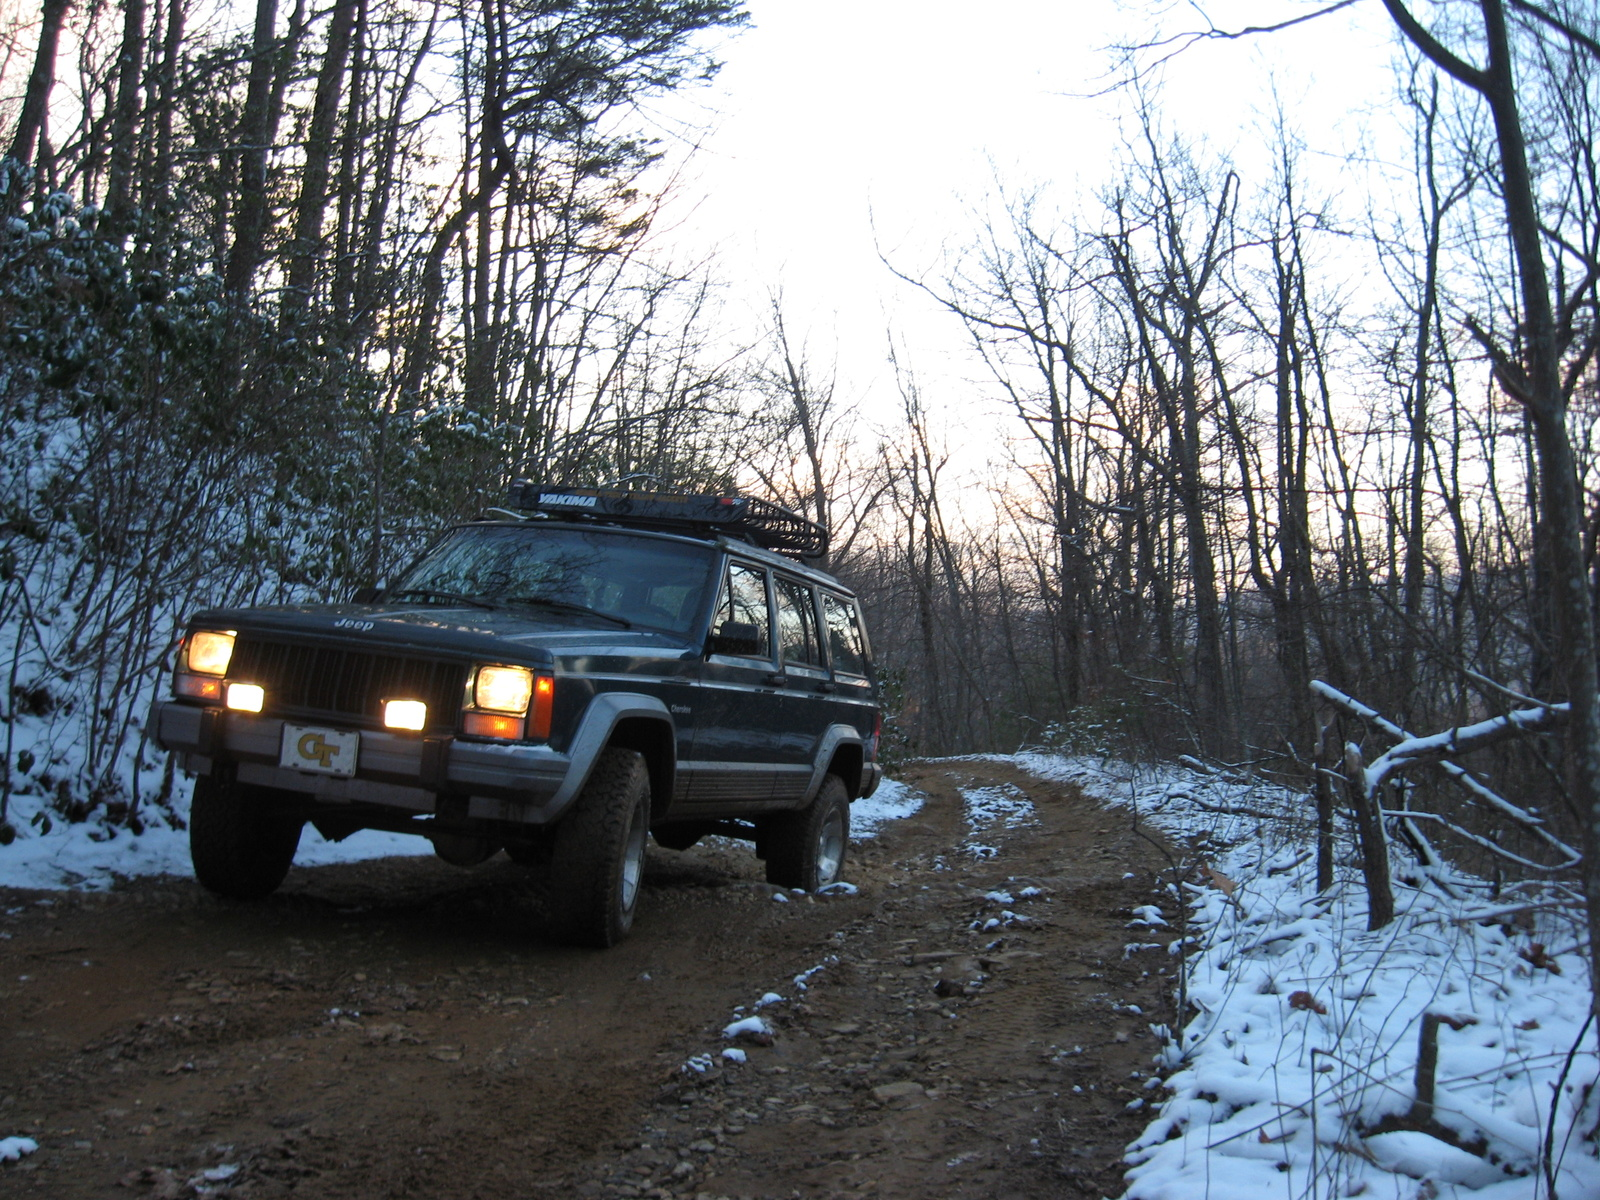 1995 Jeep Cherokee 4 Dr Country 4WD SUV picture, exterior